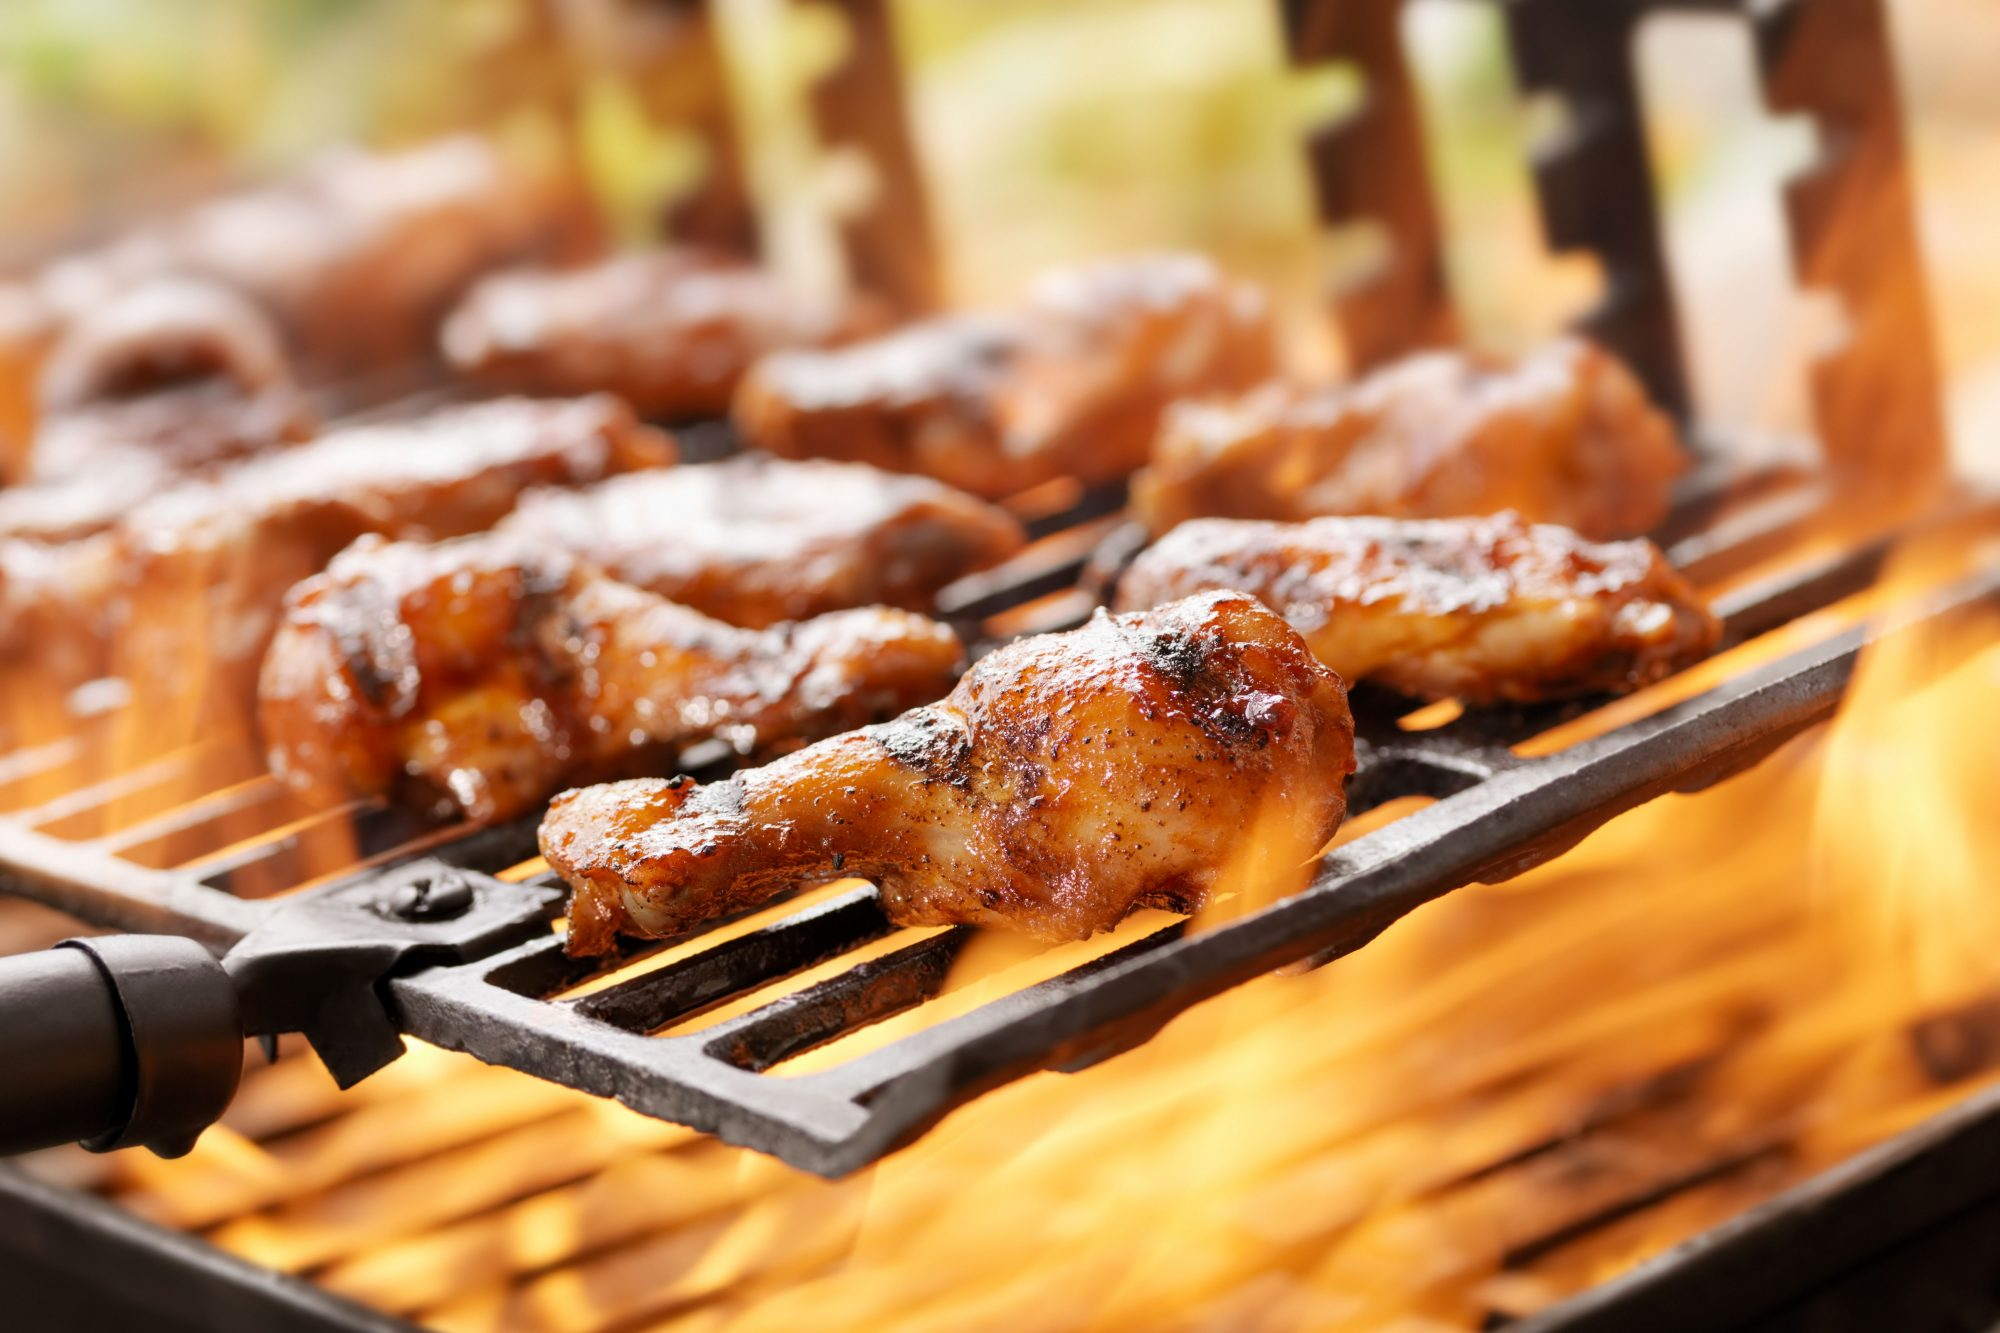 chicken wings with glaze on grill rack